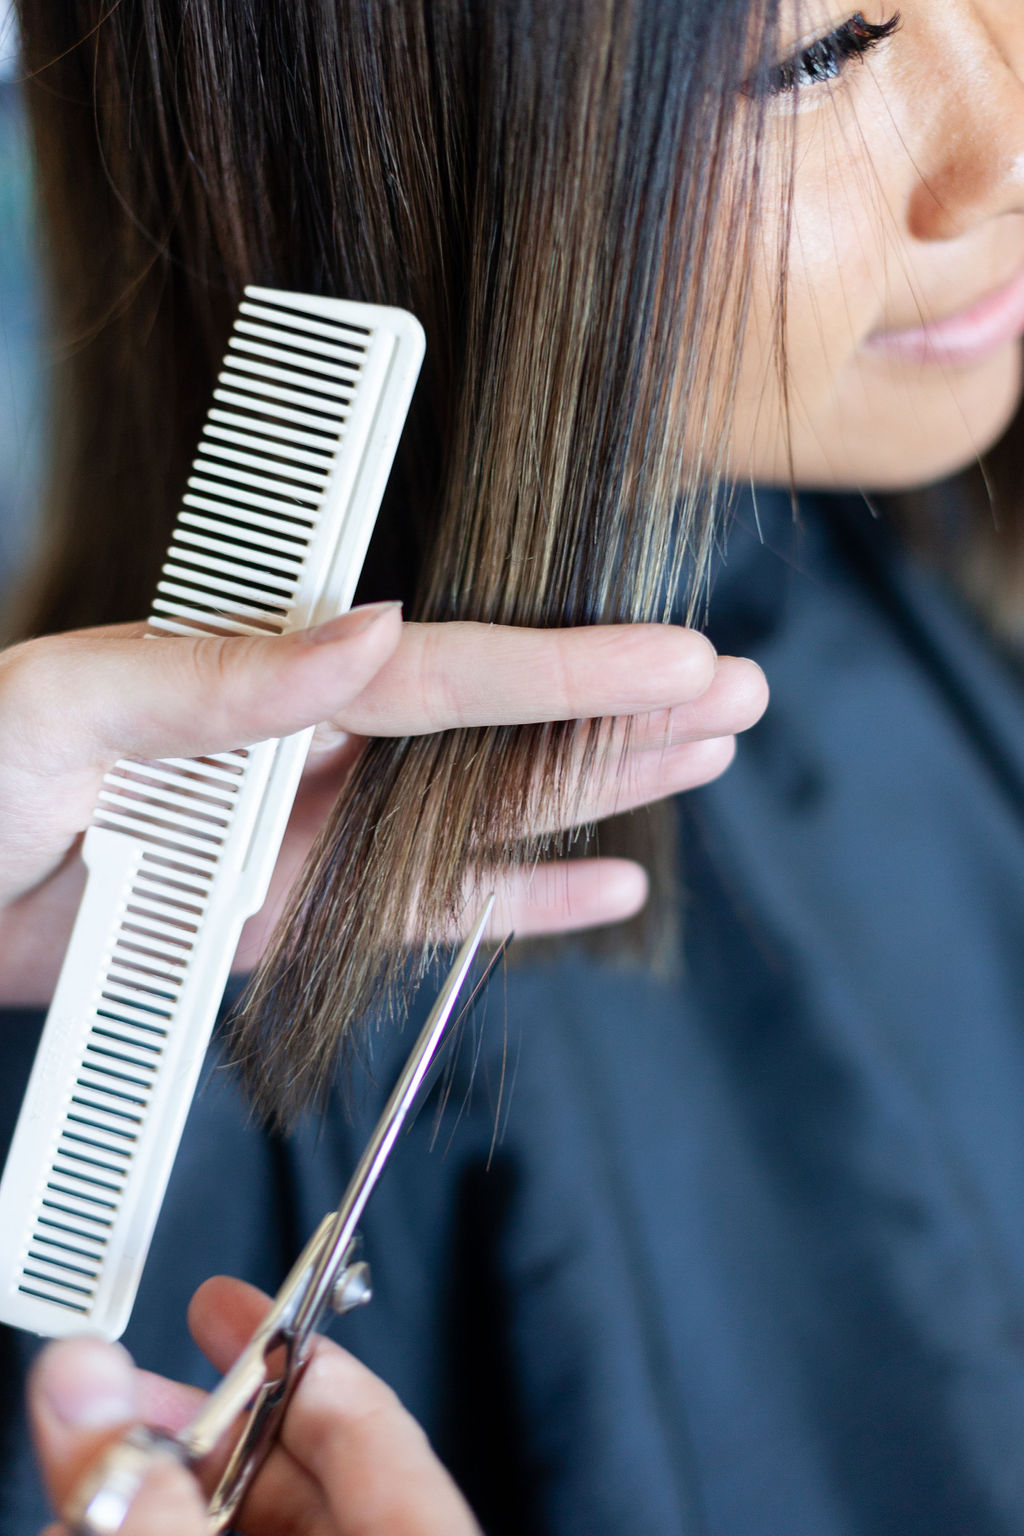 Hair Design - Women's Haircut & Style: From $45Men's Haircut & Style: From $30Men's Beard Trim: From $10Children's Haircut & Style (12years of age and under): From $20Fringe or Neck Trim (Complimentary to existing guests): From $10